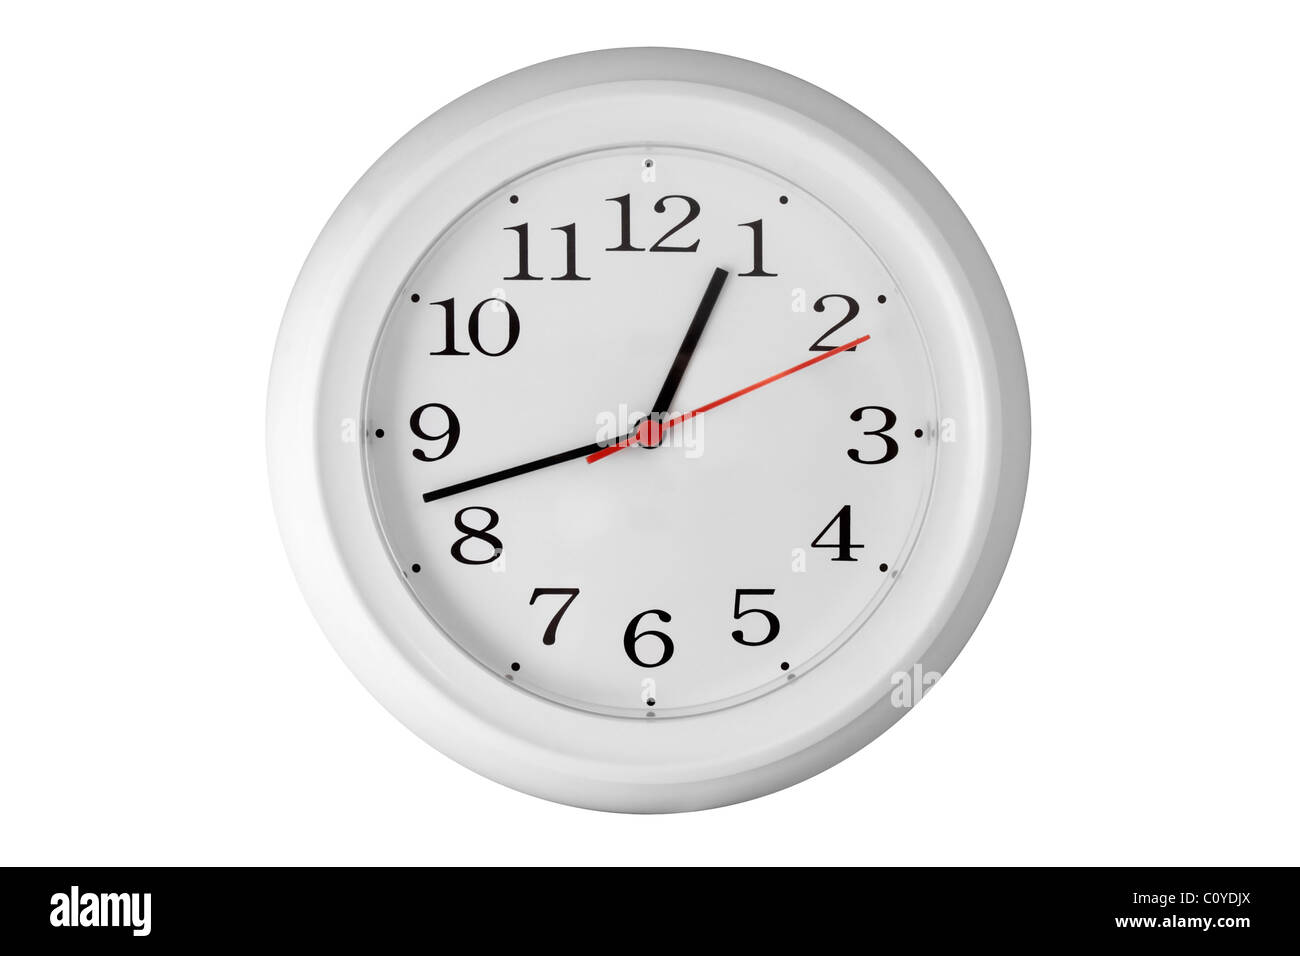 A Plain White Kitchen Wall Clock with Bright Red Second Hand - Stock Image